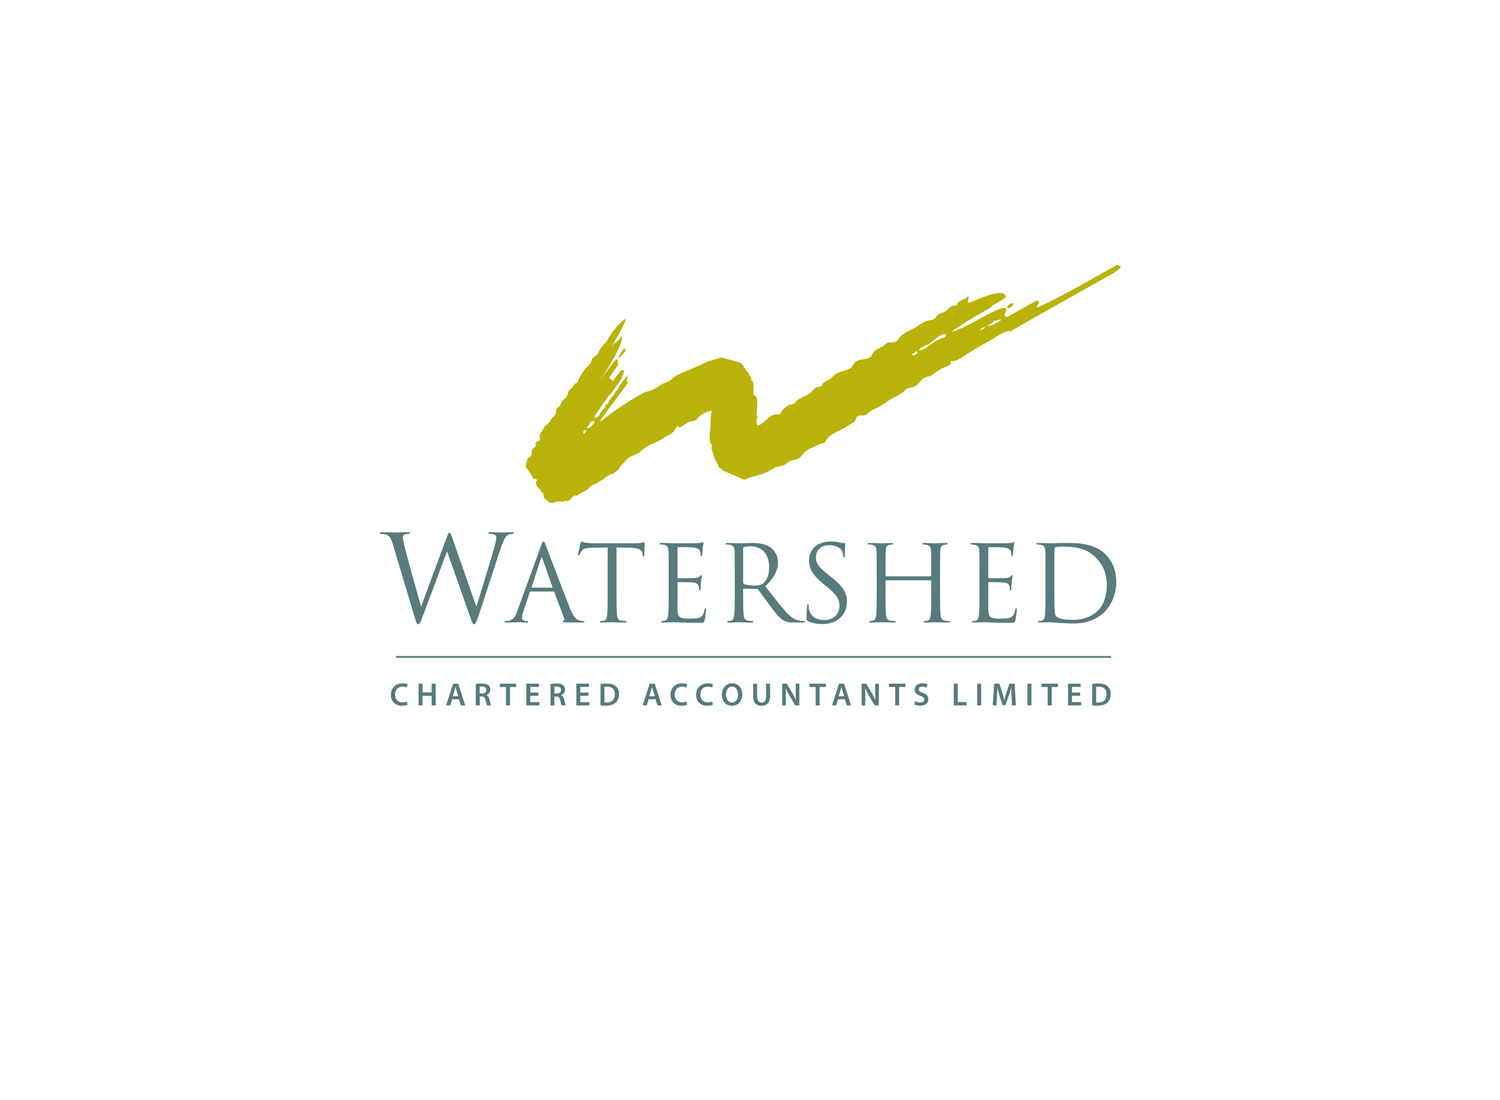 WATERSHED_LOGO.jpg